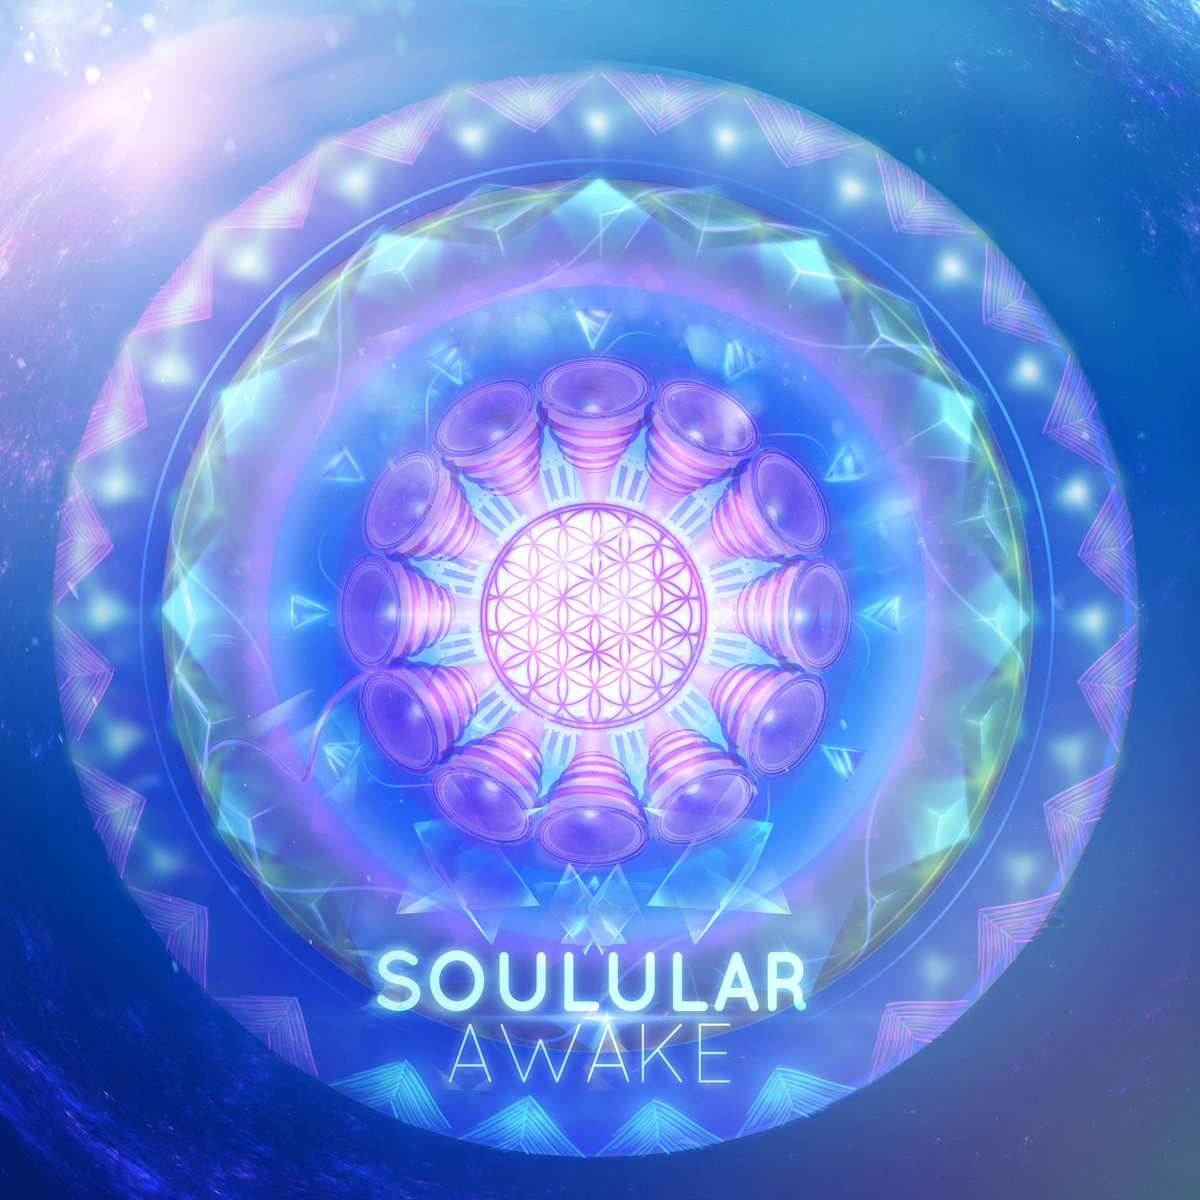 Soulular - Listen @ 'AWAKE' album (los angeles, chill)